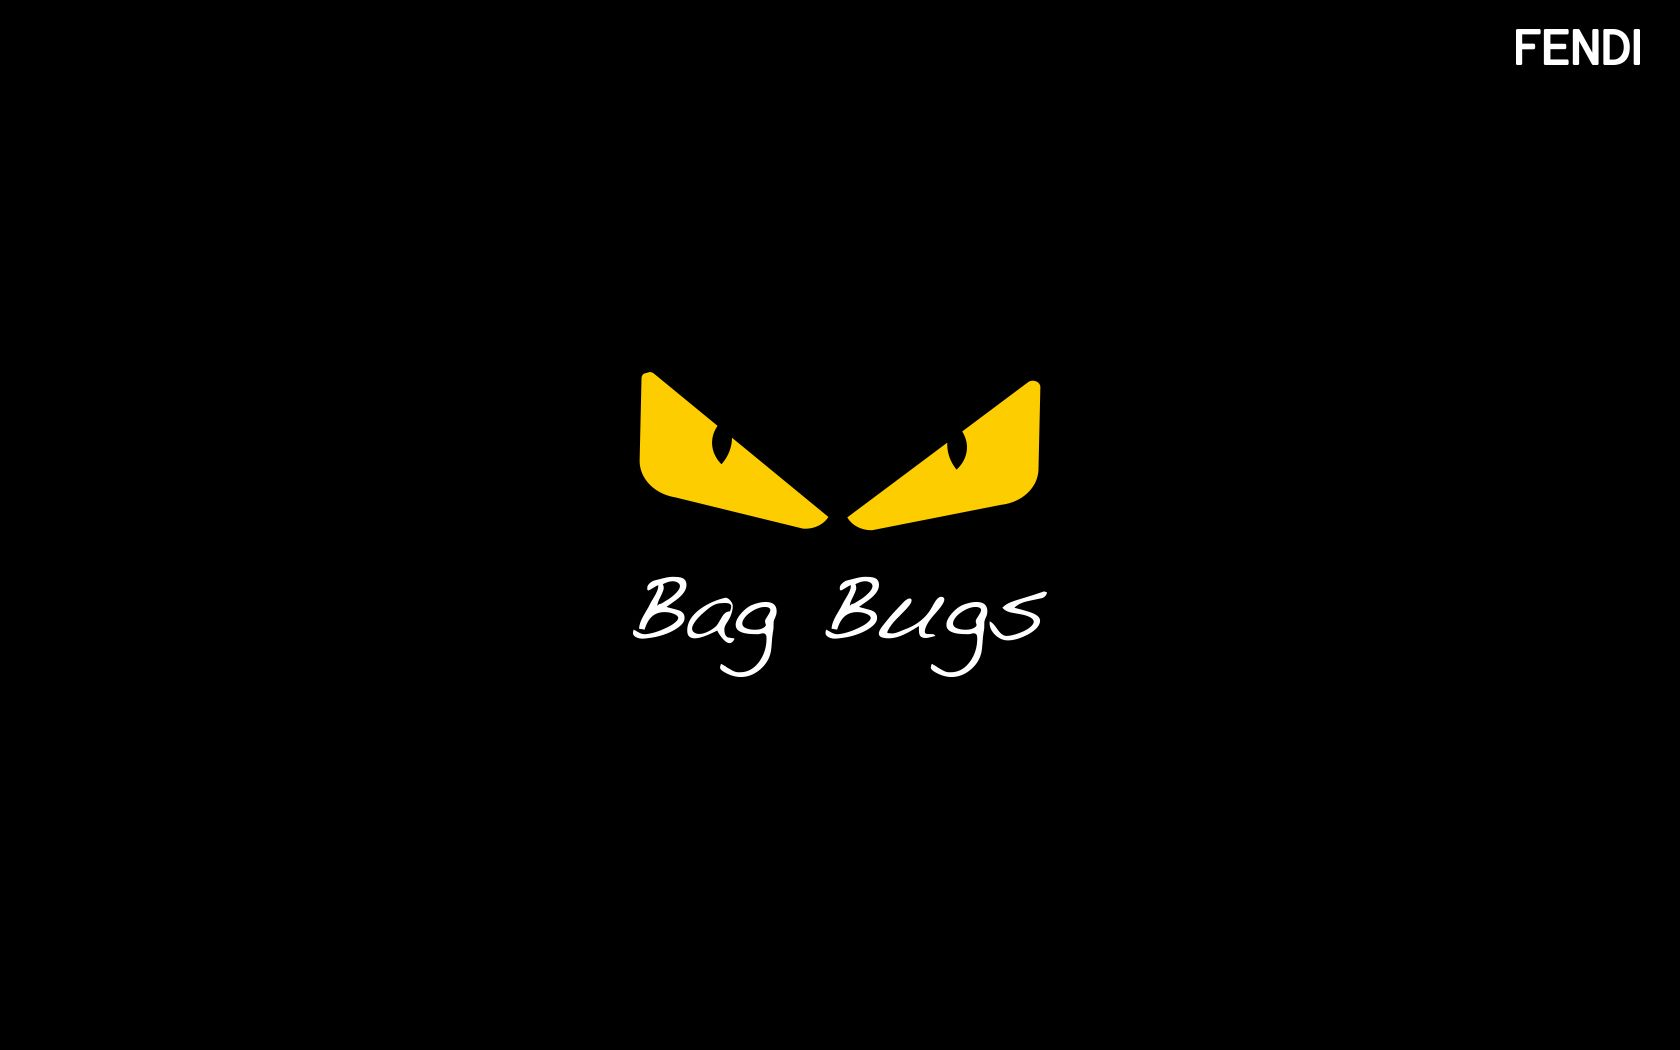 1680x1050 Join the bag Bags mania and download your Bag-Bugged wallpaper ...